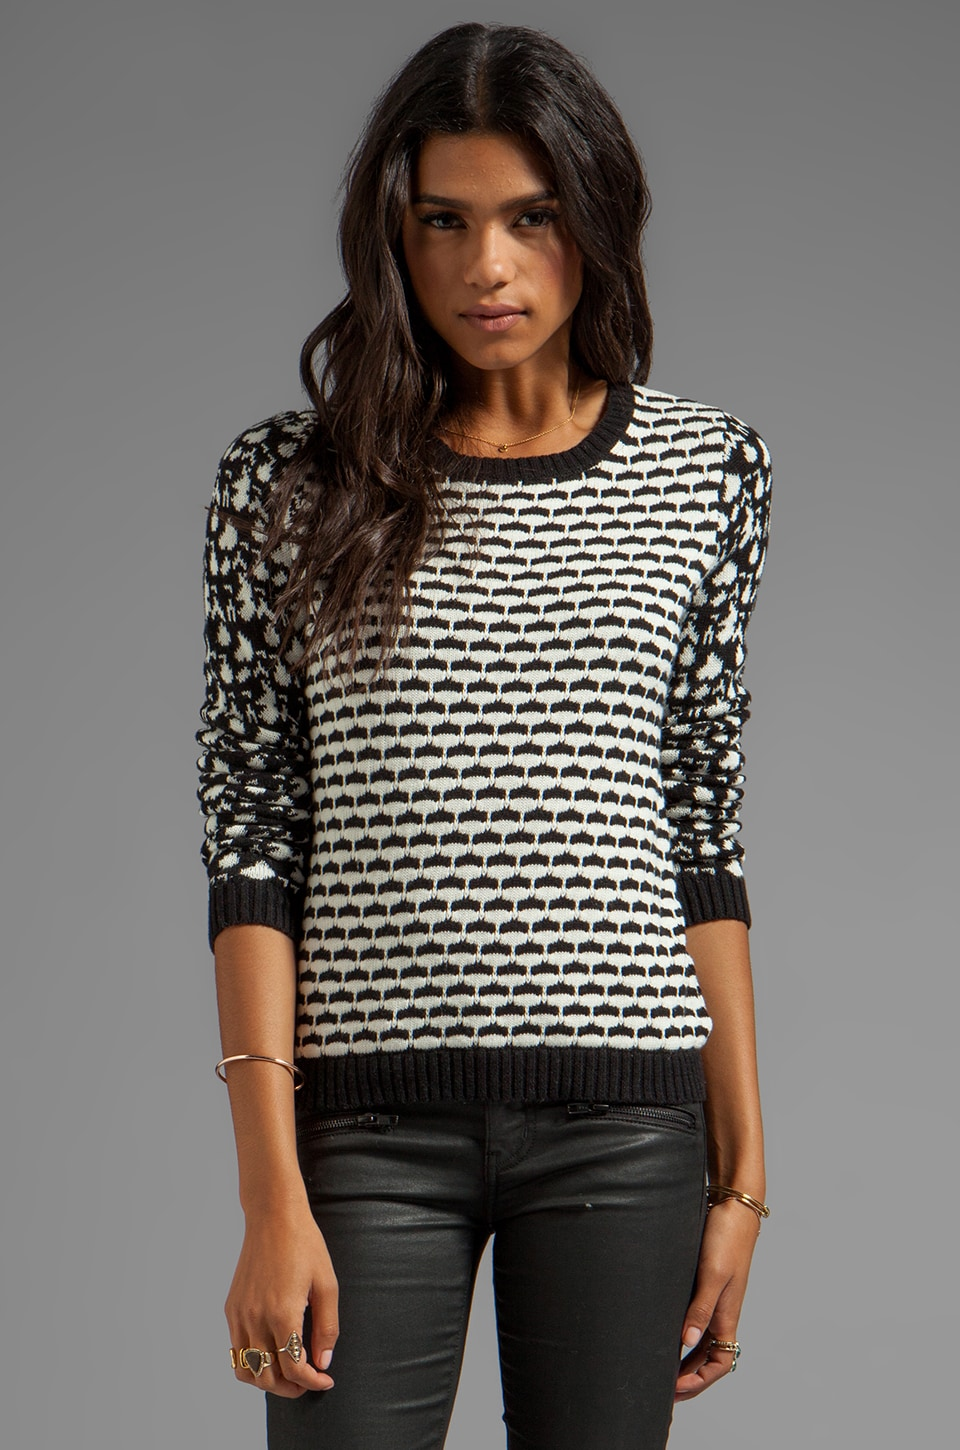 SHAE Mixed Jacquard Pullover in Black Combo